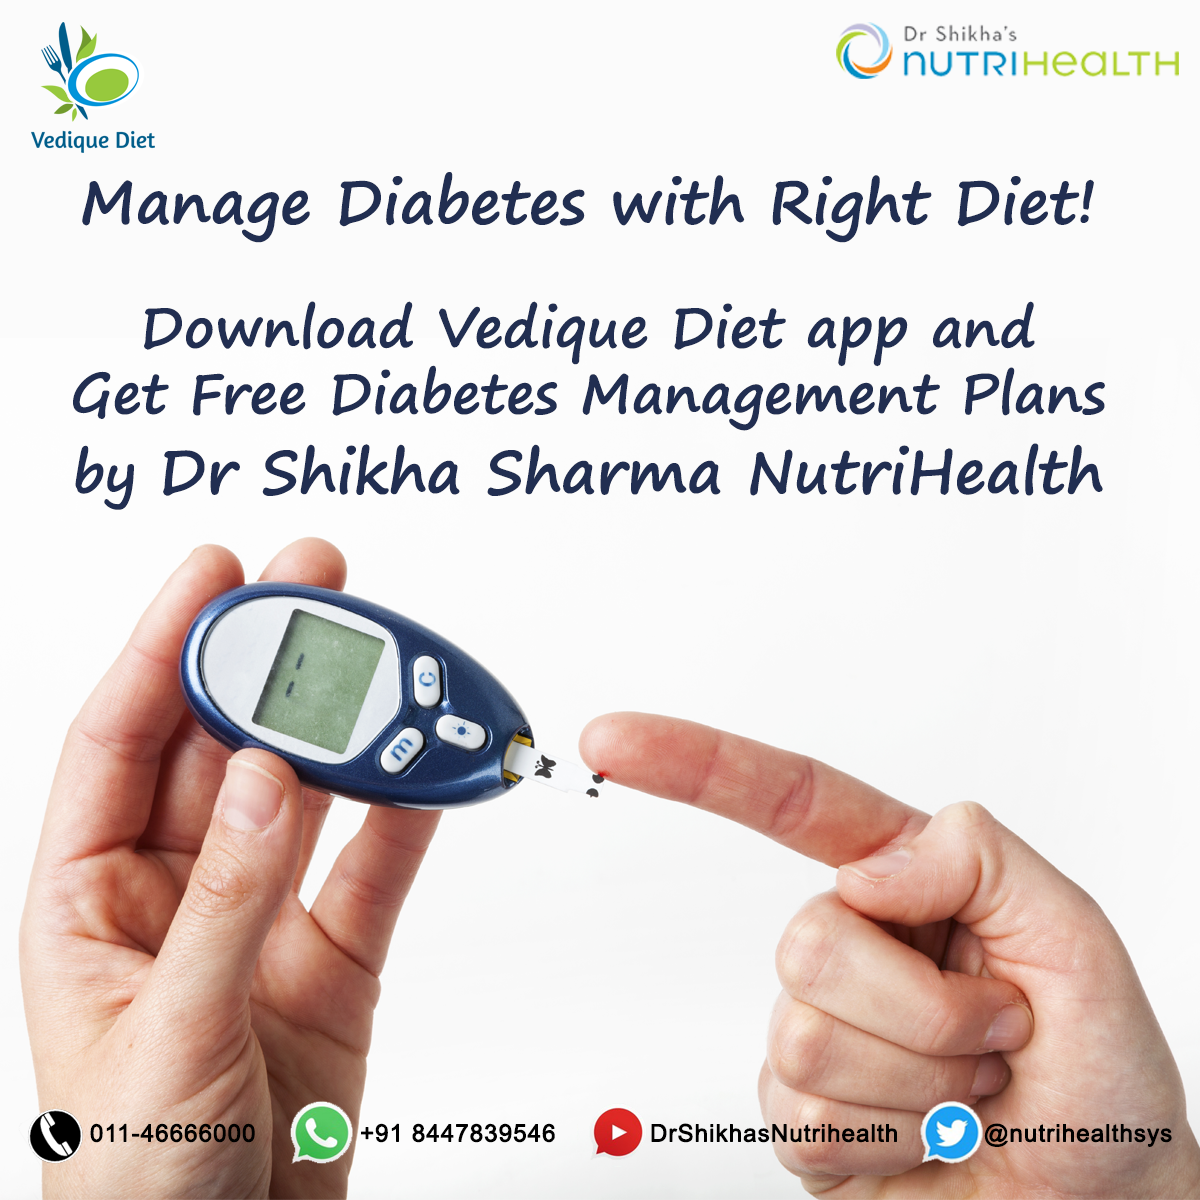 Get free Diabetes Management Plans in Vedique Diet app